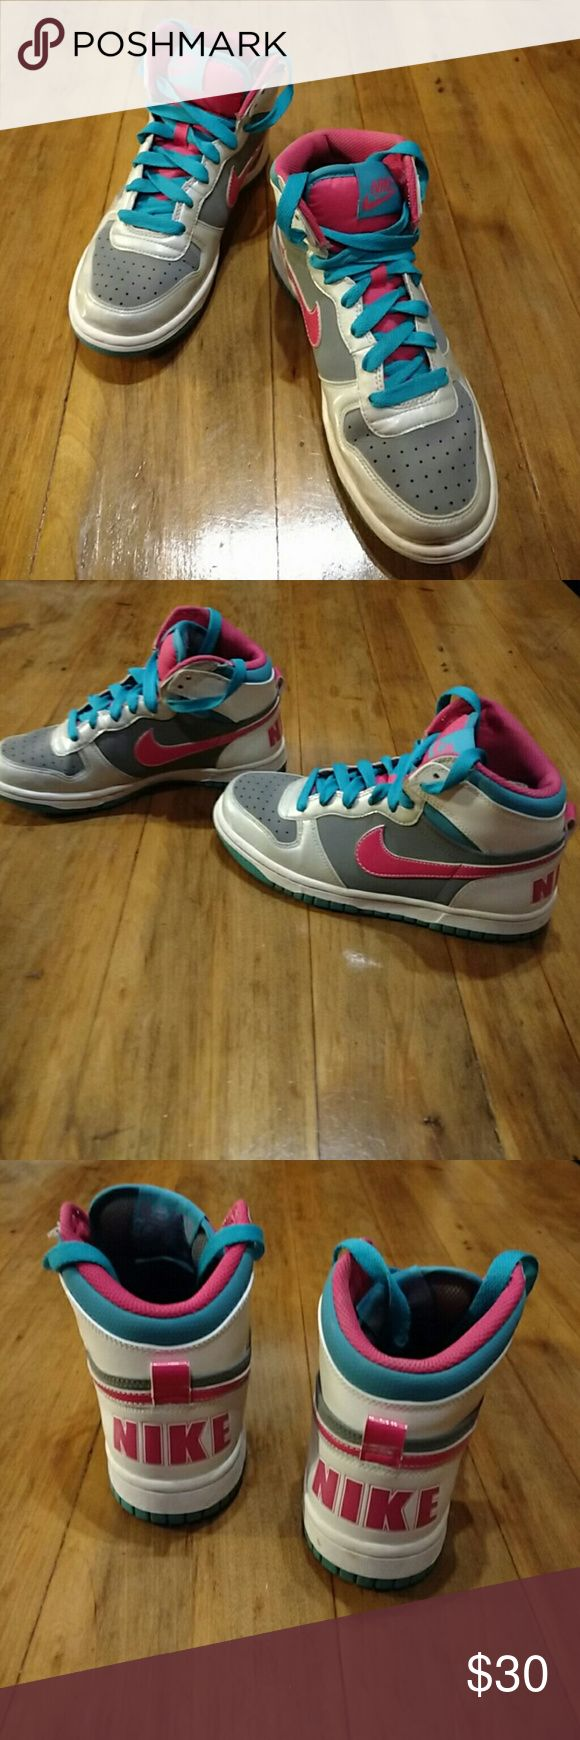 Nike Hi Tops AWESOME NIKE Hi tops. Grey, pink, turquoise and white. Worn one time for high school graduation! Nike Shoes